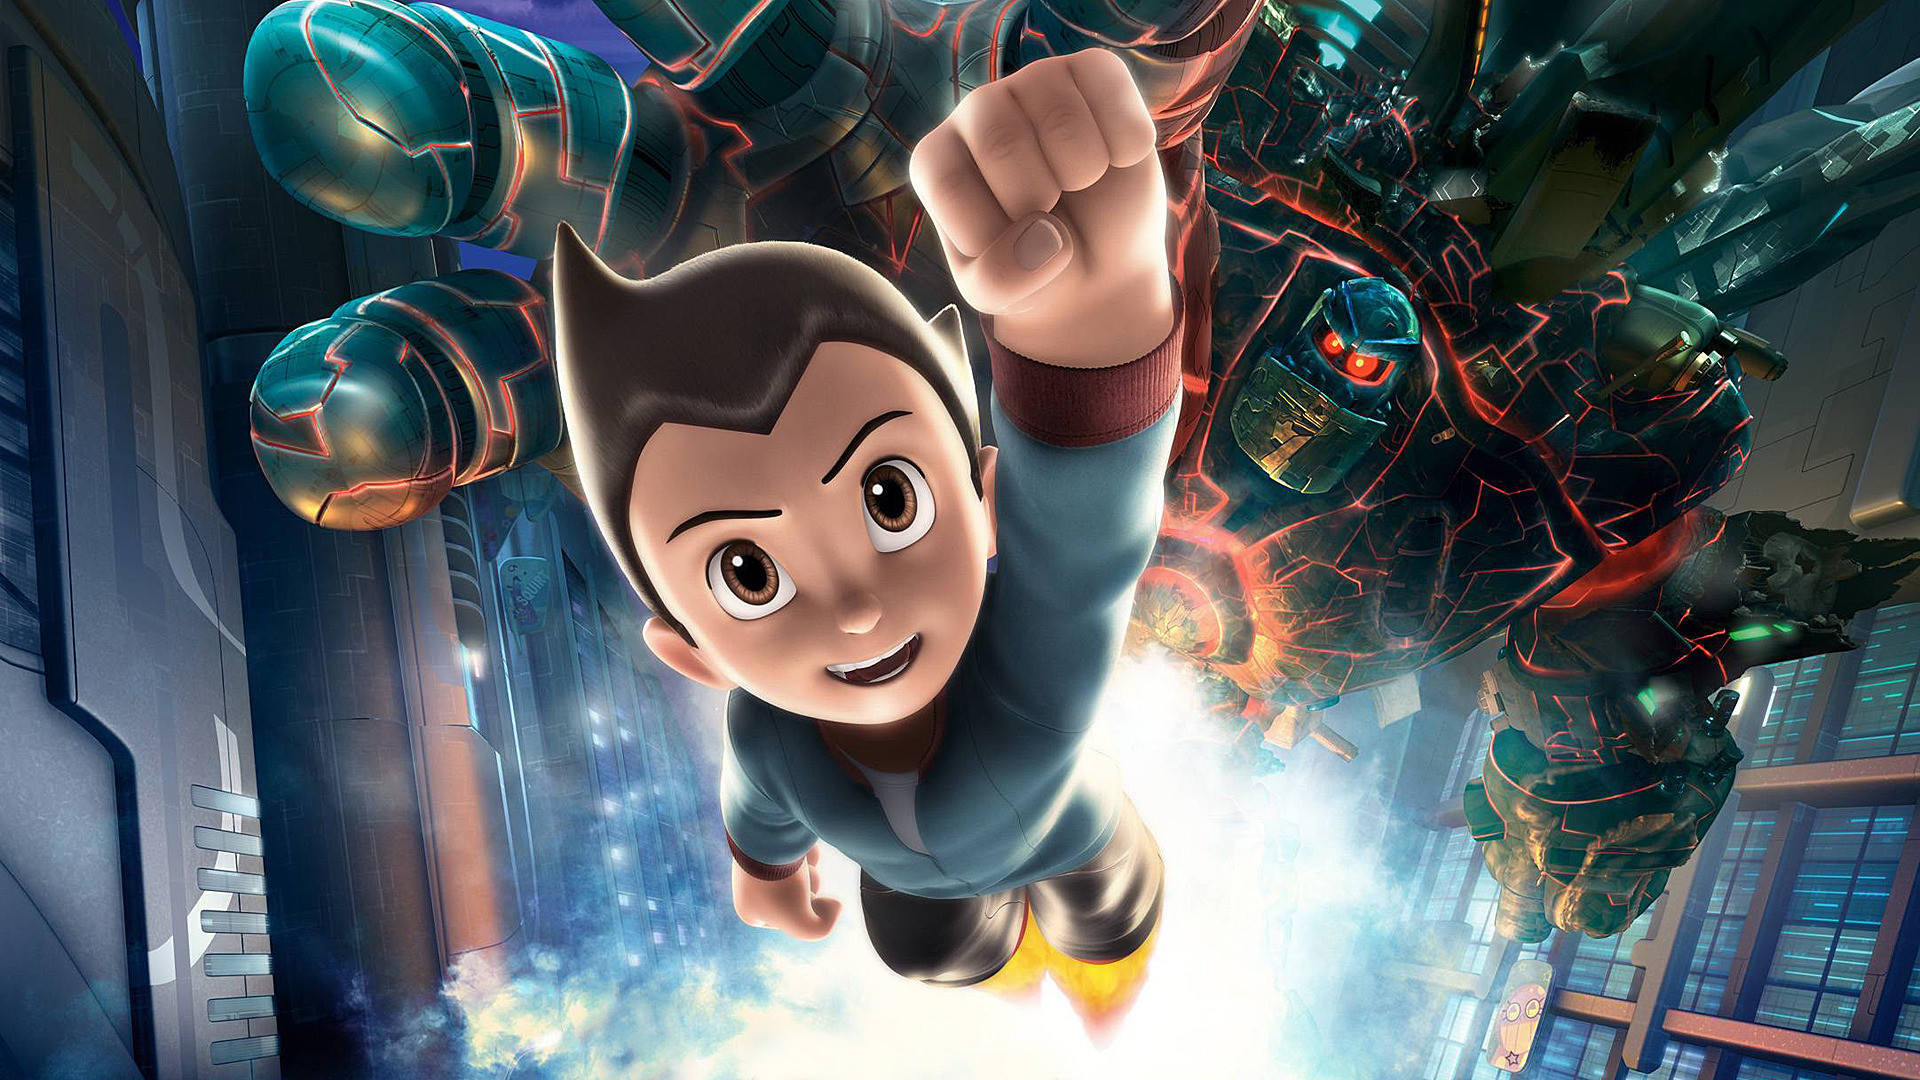 Wallpaper Astro Boy